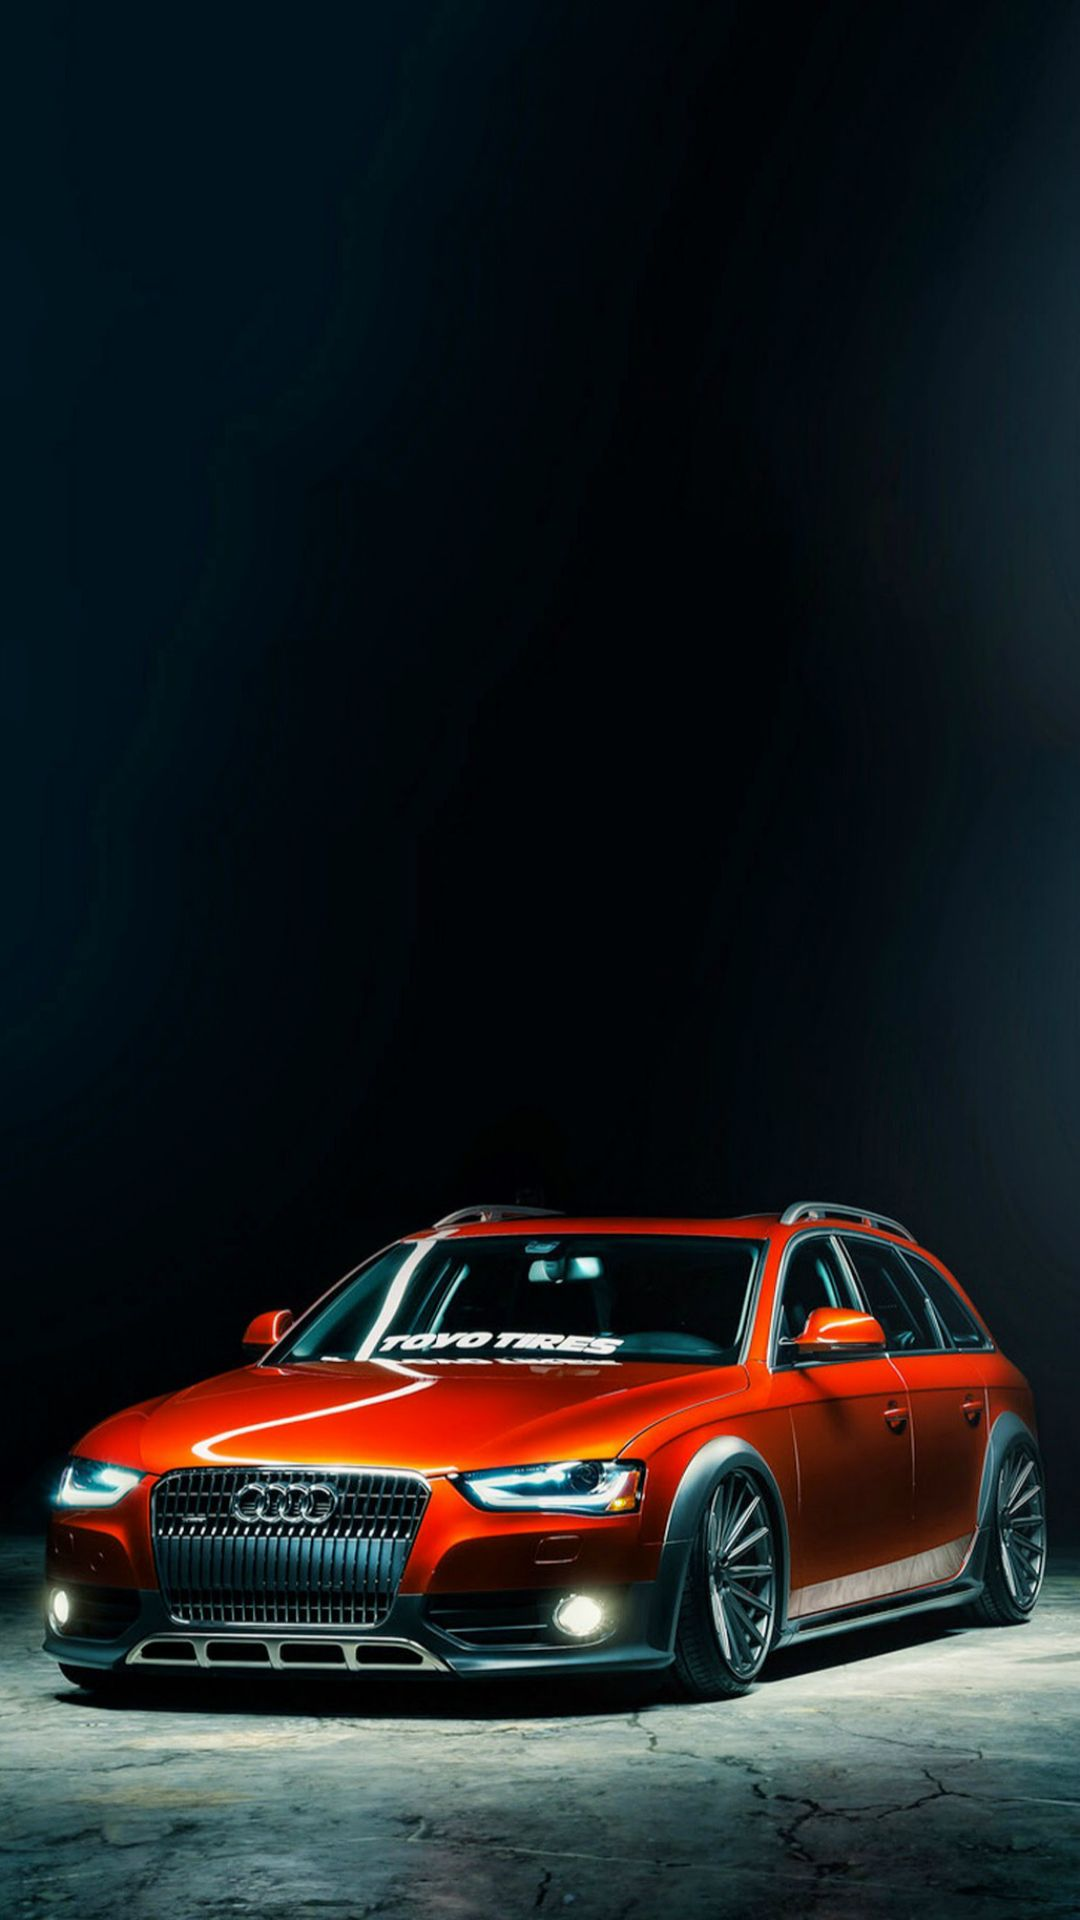 Audi Iphone Wallpapers Top Free Audi Iphone Backgrounds